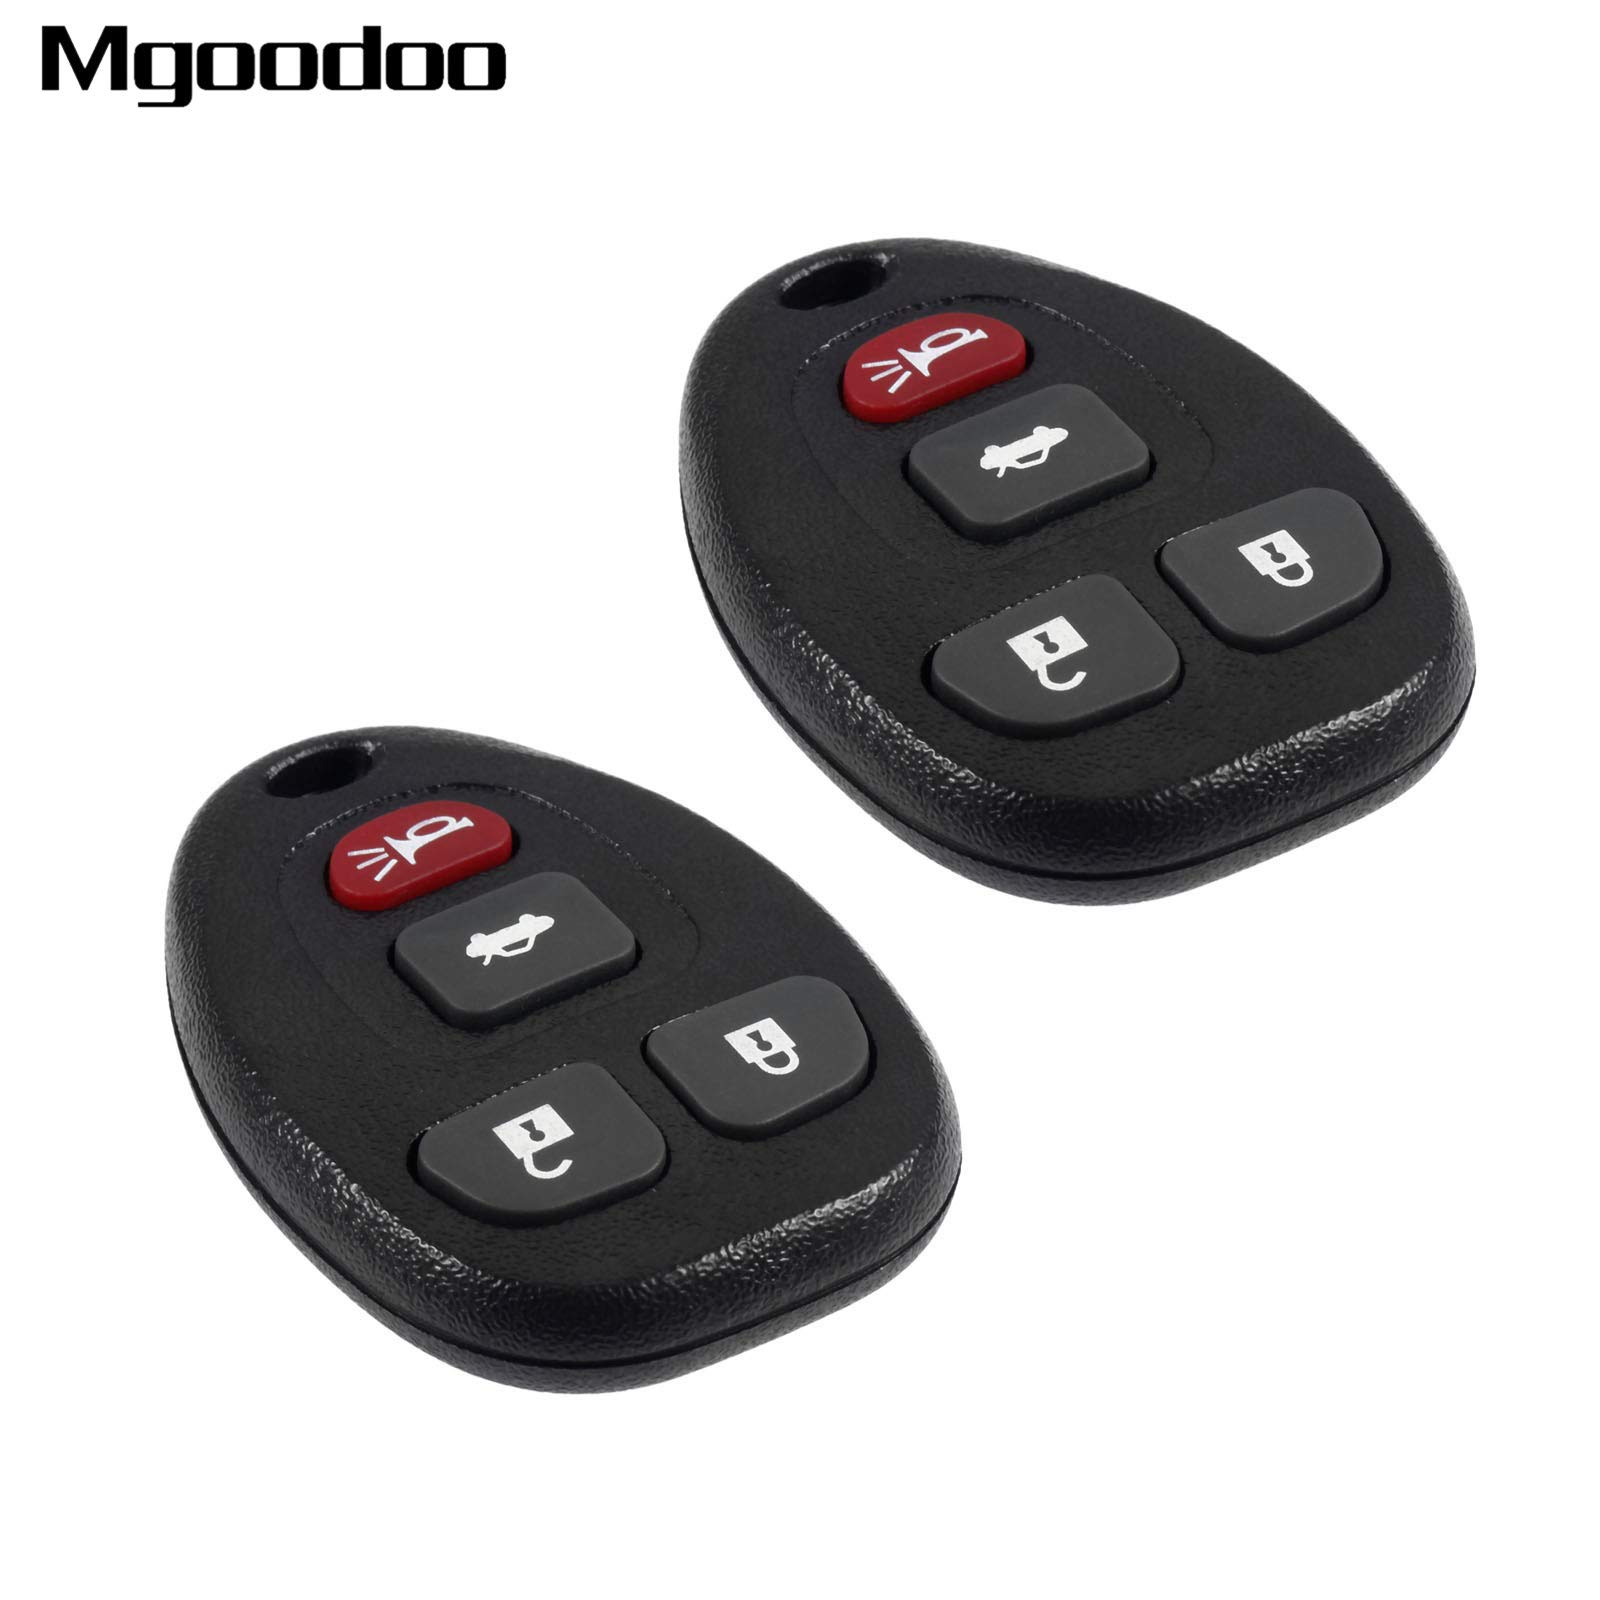 Daphot-Store - 2Pcs 4 Buttons Remote Car Key Fob Shell Case 315Mhz For Chevrolet Malibu Cobalt Buick Allure LaCrosse KOBGT04A Replacement Parts